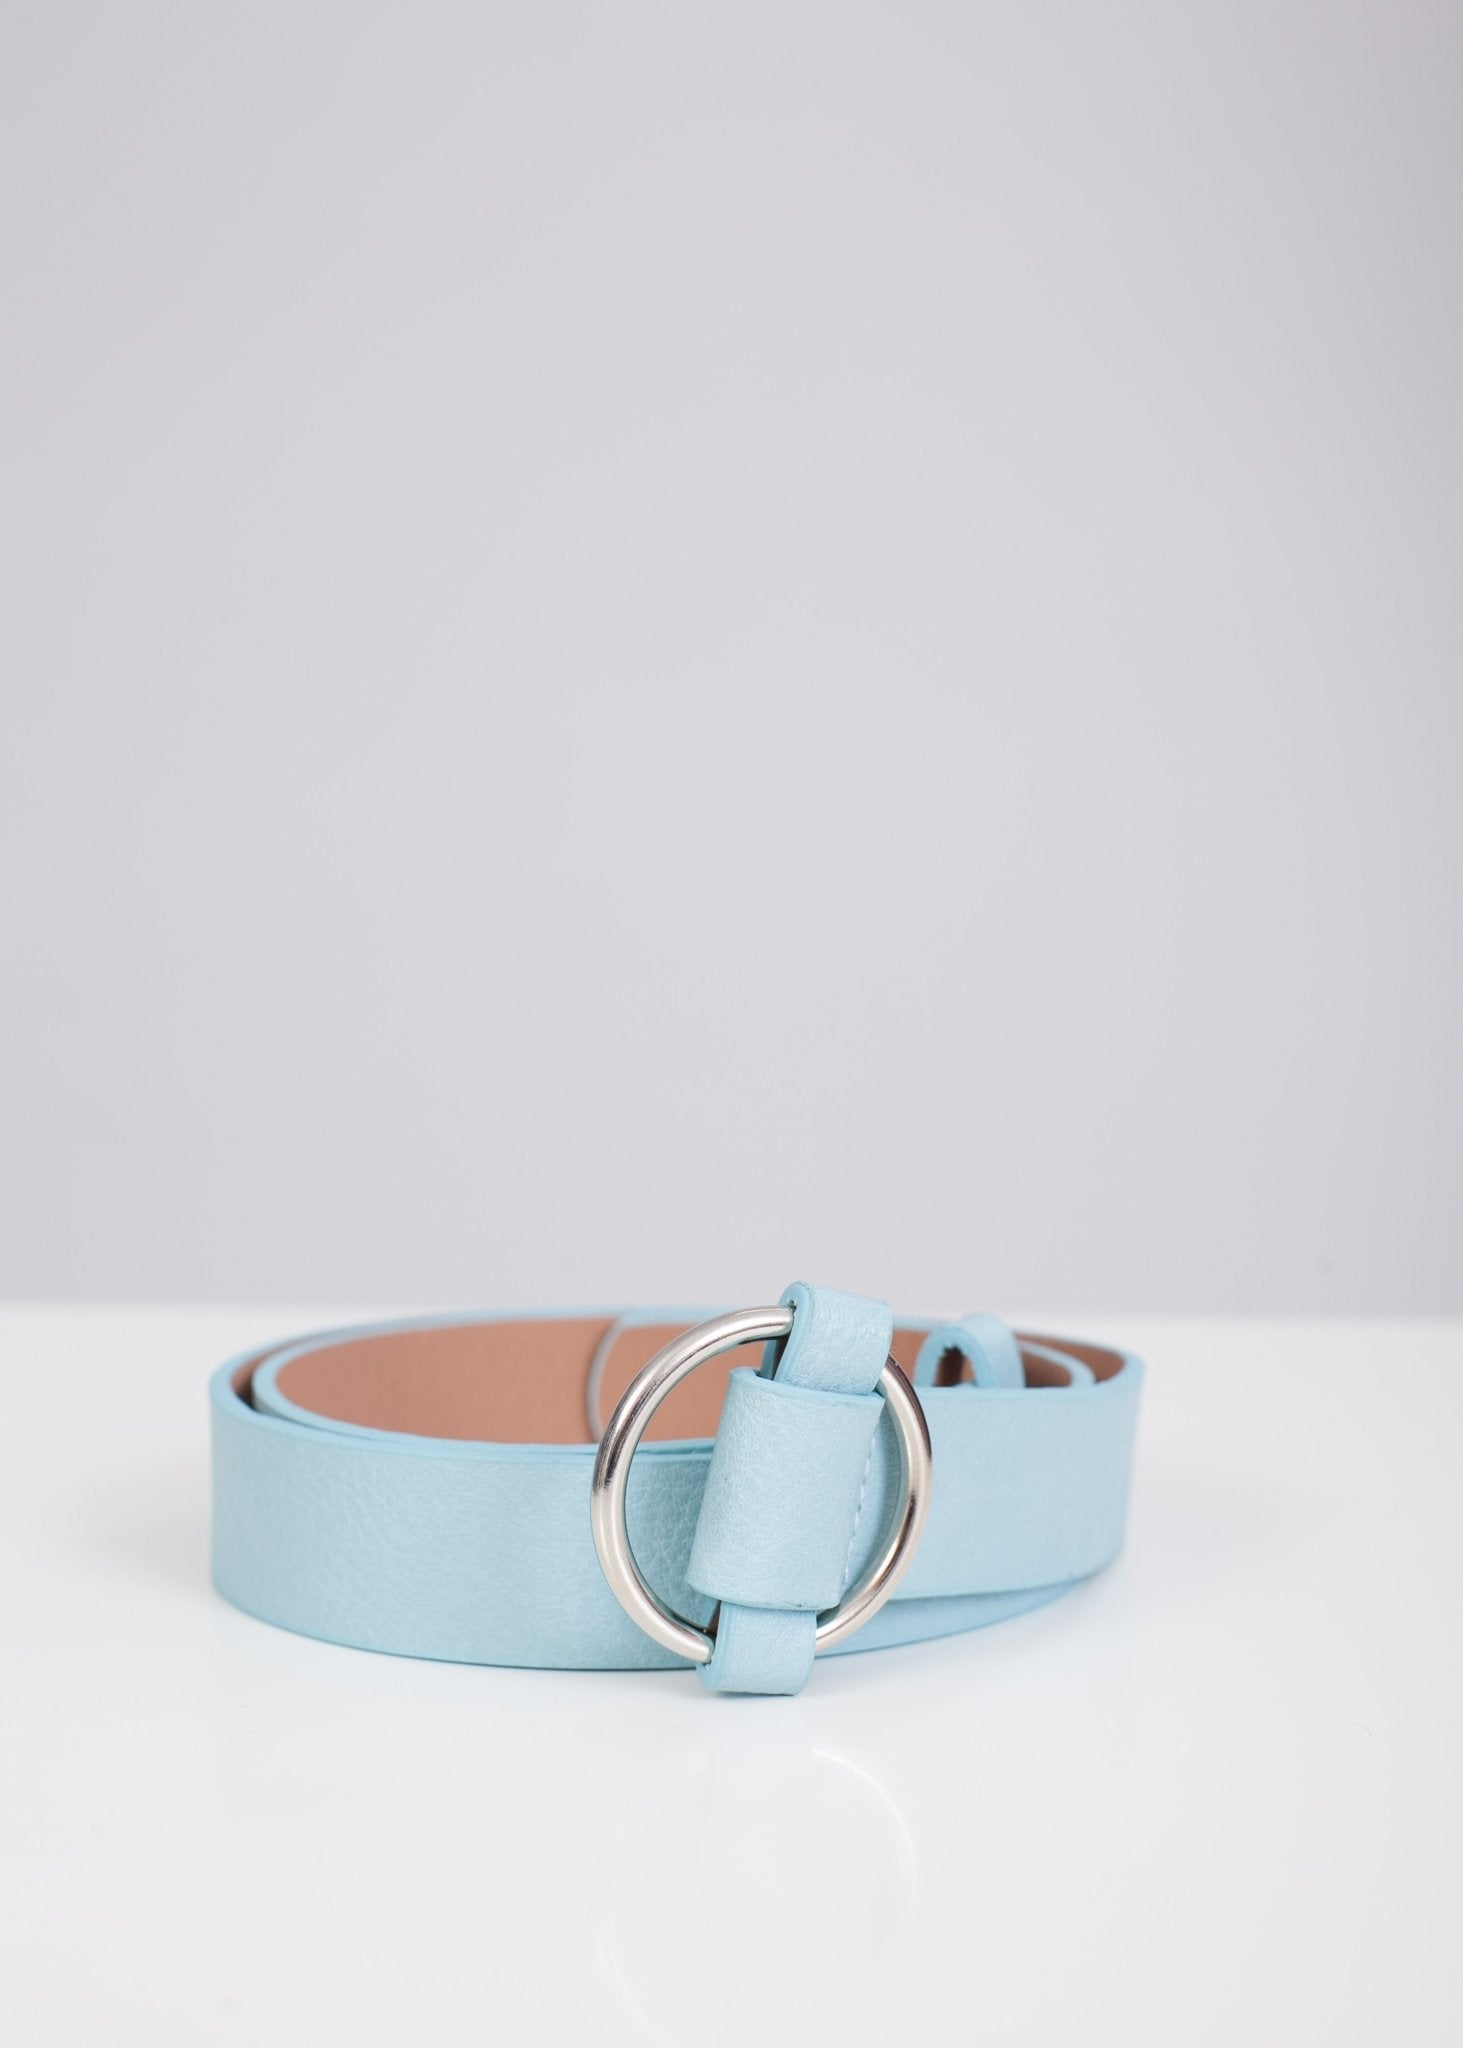 Frankie Slim Belt - The Walk in Wardrobe